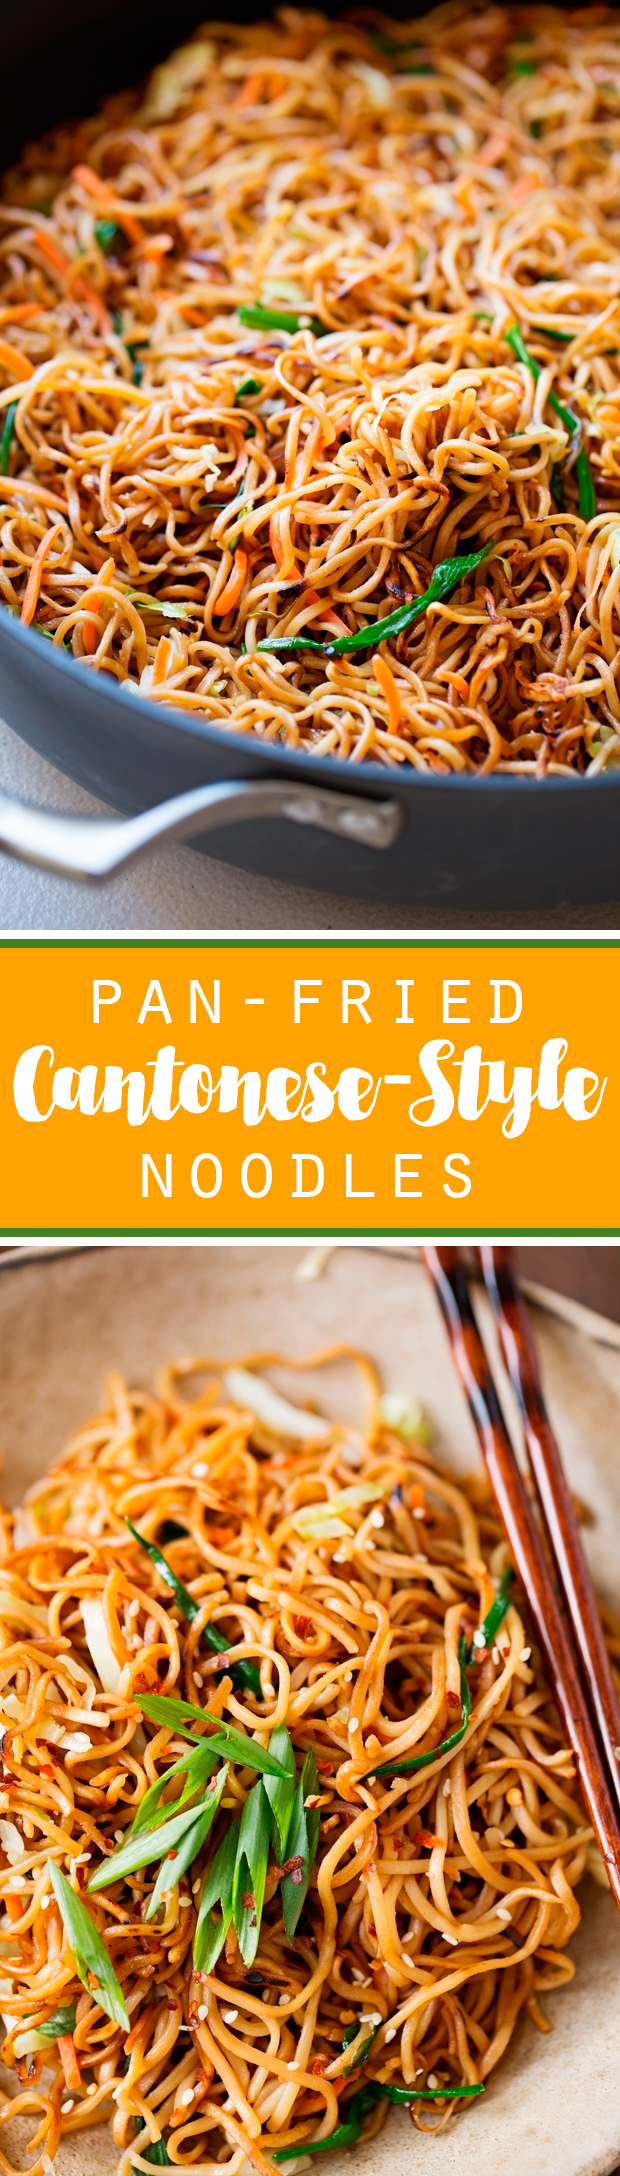 Cantonese Style Pan Fried Noodles Recipe Little Spice Jar